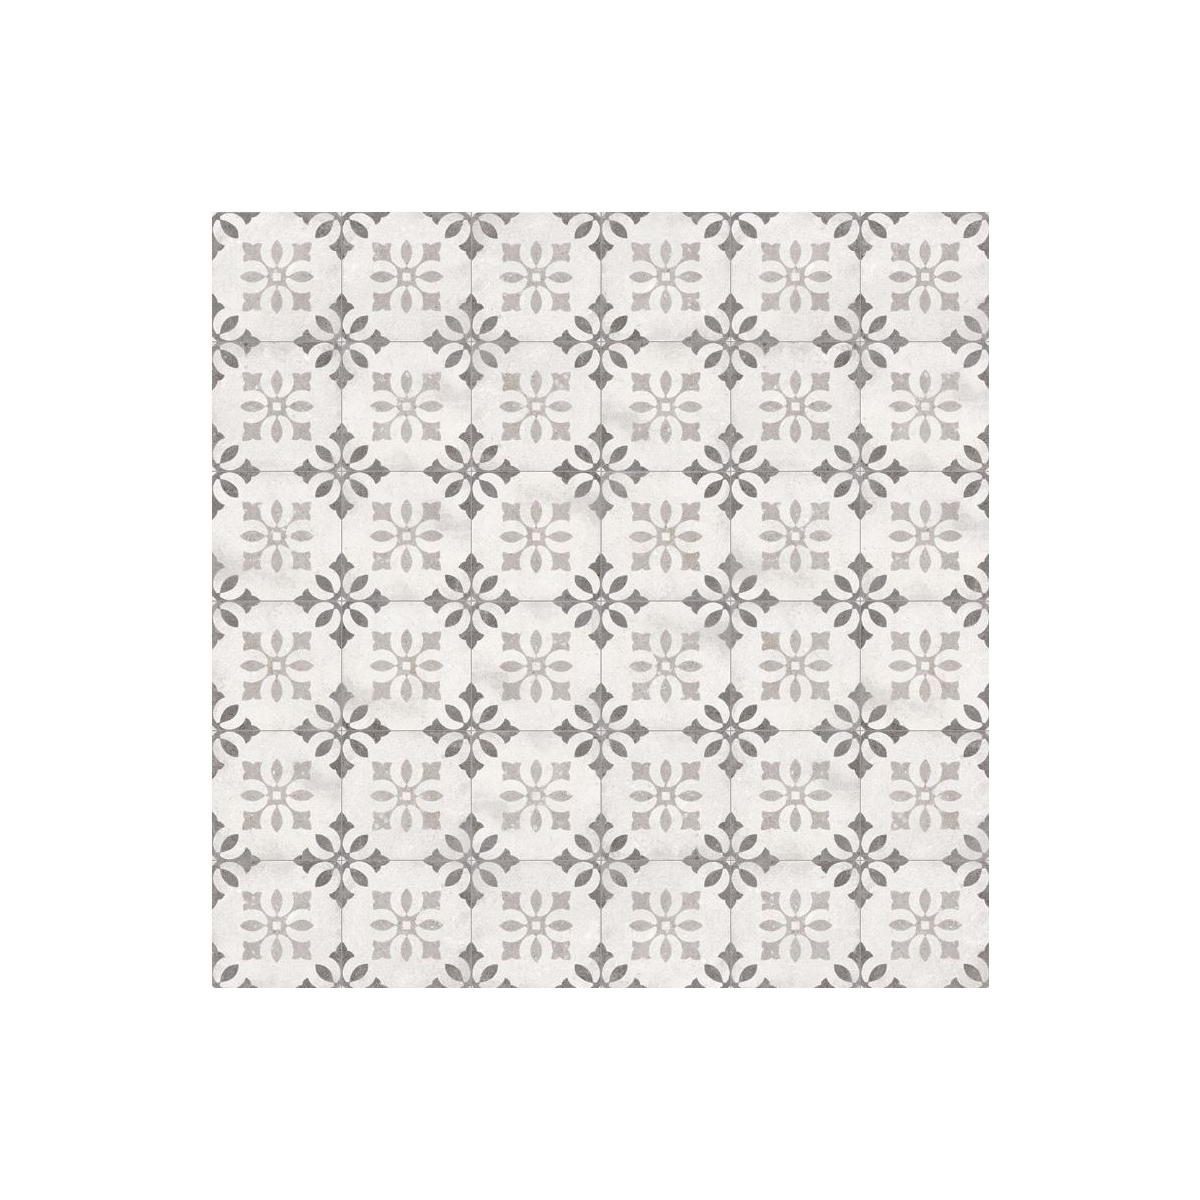 Pukao Blanco 20x20 (m2) Vives